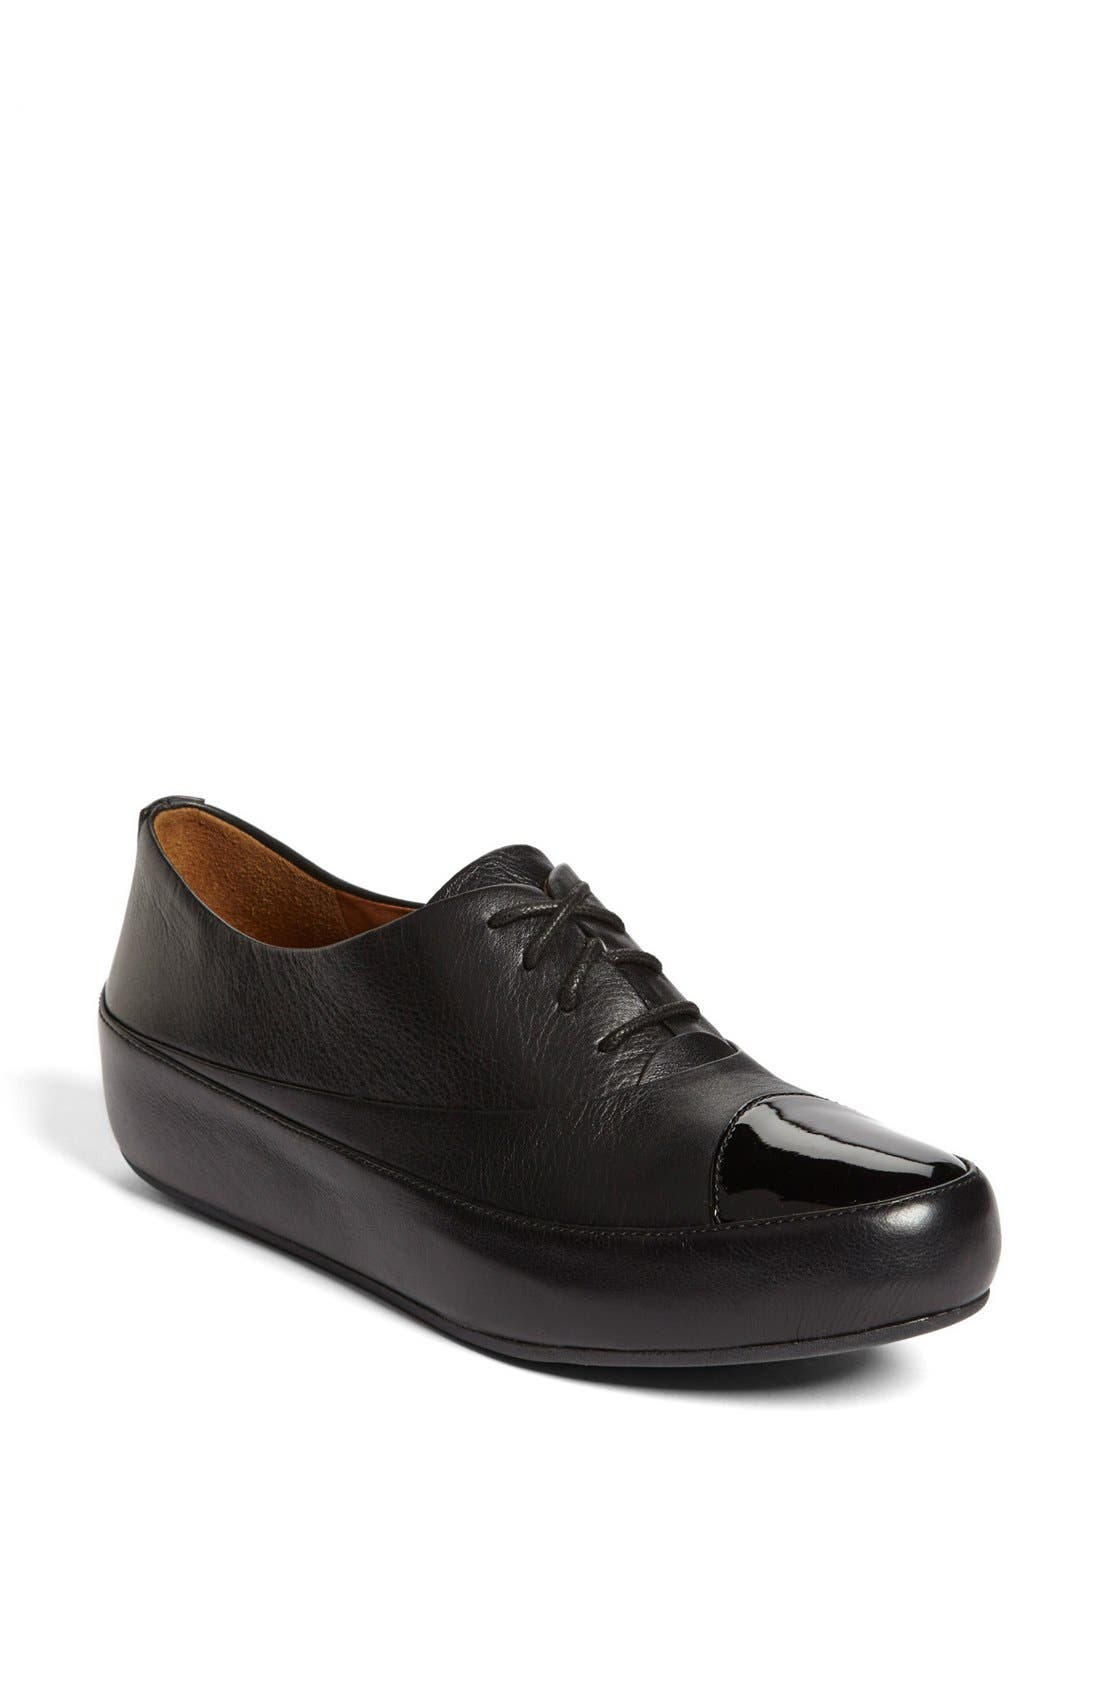 Main Image - FitFlop 'Dué™' Oxford